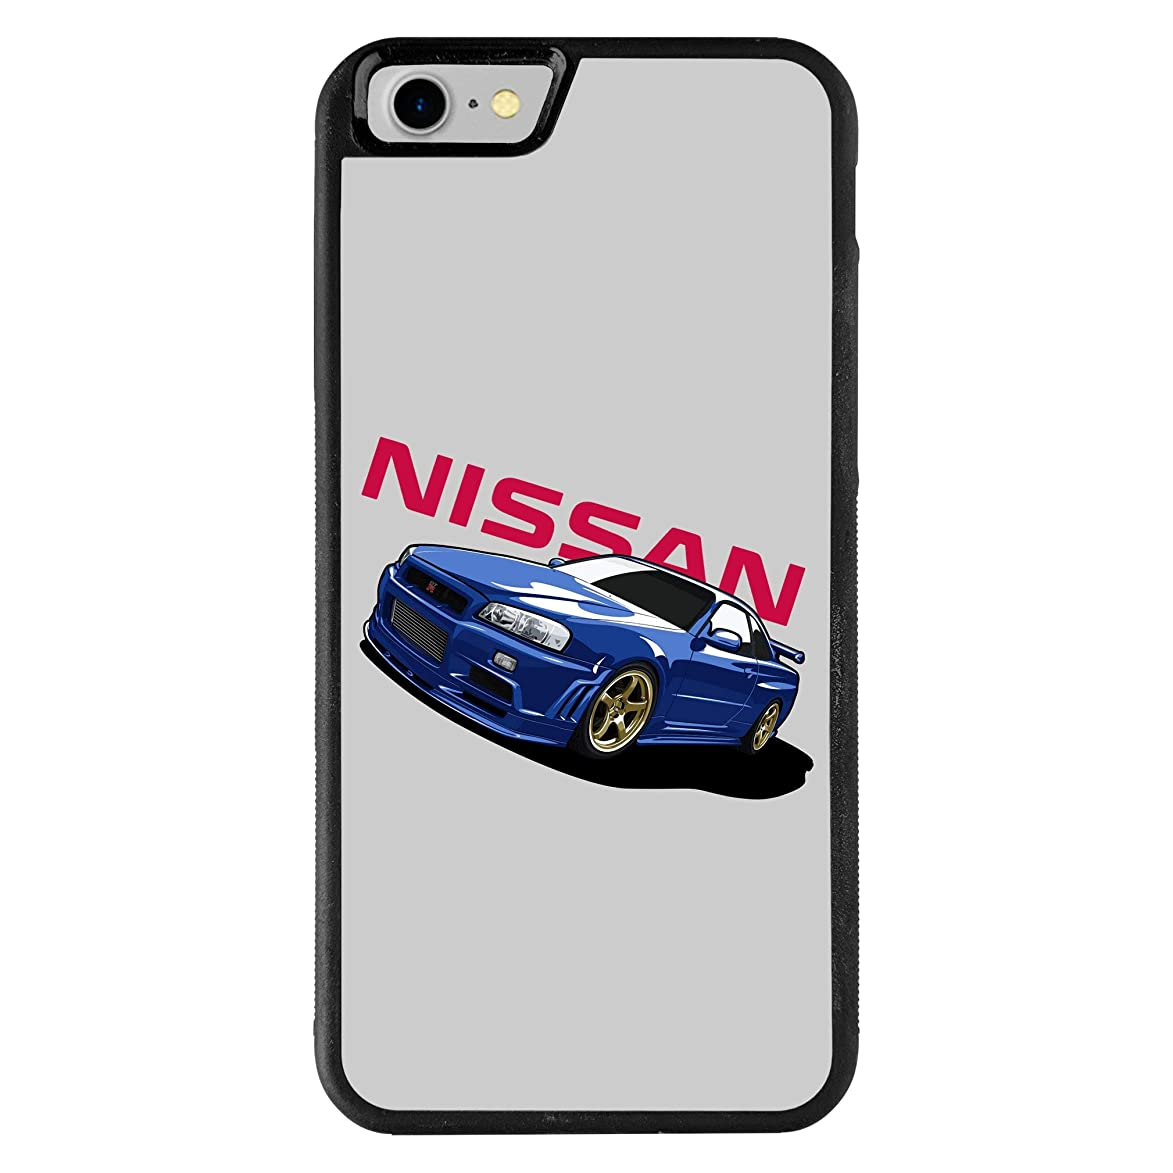 Nissan GT-R R34 Phone Case (iPhone 6/6s)